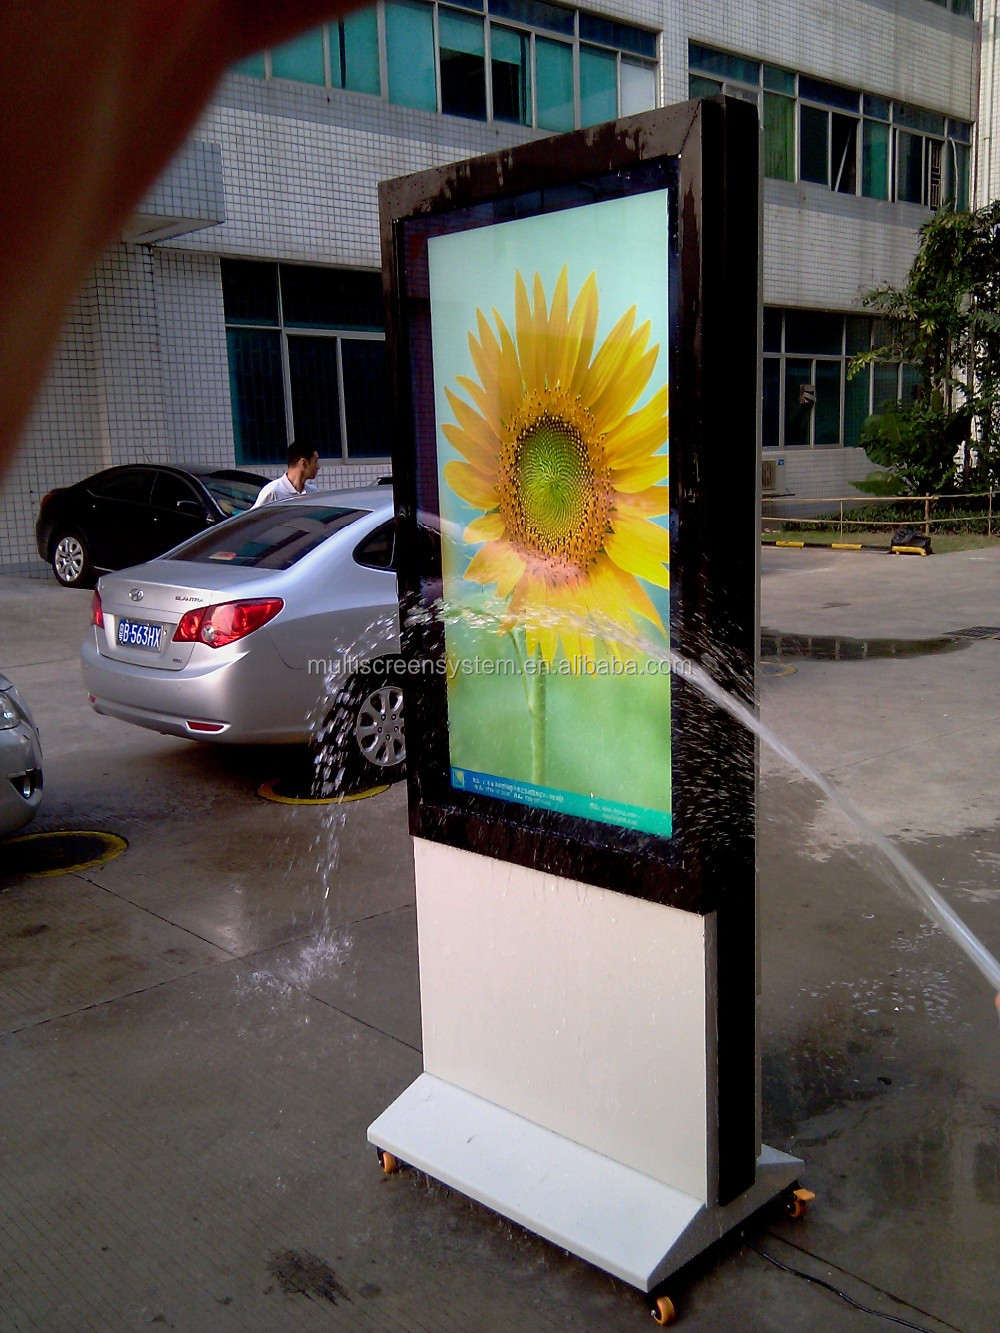 EKAA 3000nits Outdoor High Brightness LCD Advertising Monitor